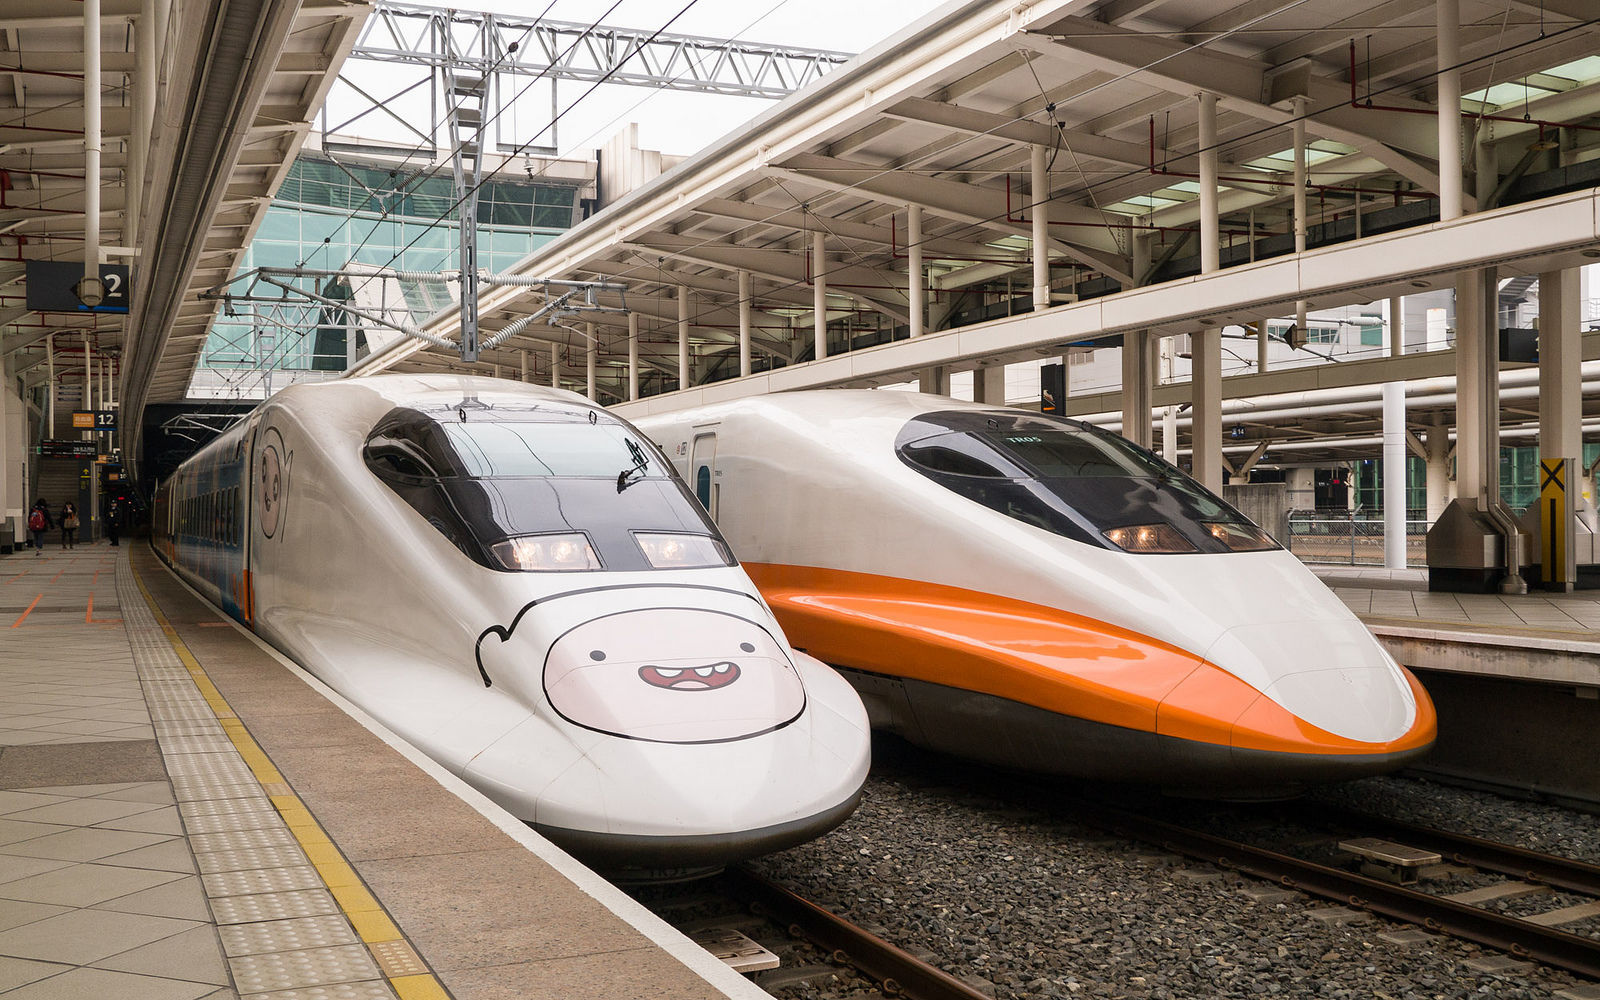 Taiwan High Speed Rail Discount Ticket from Chiayi